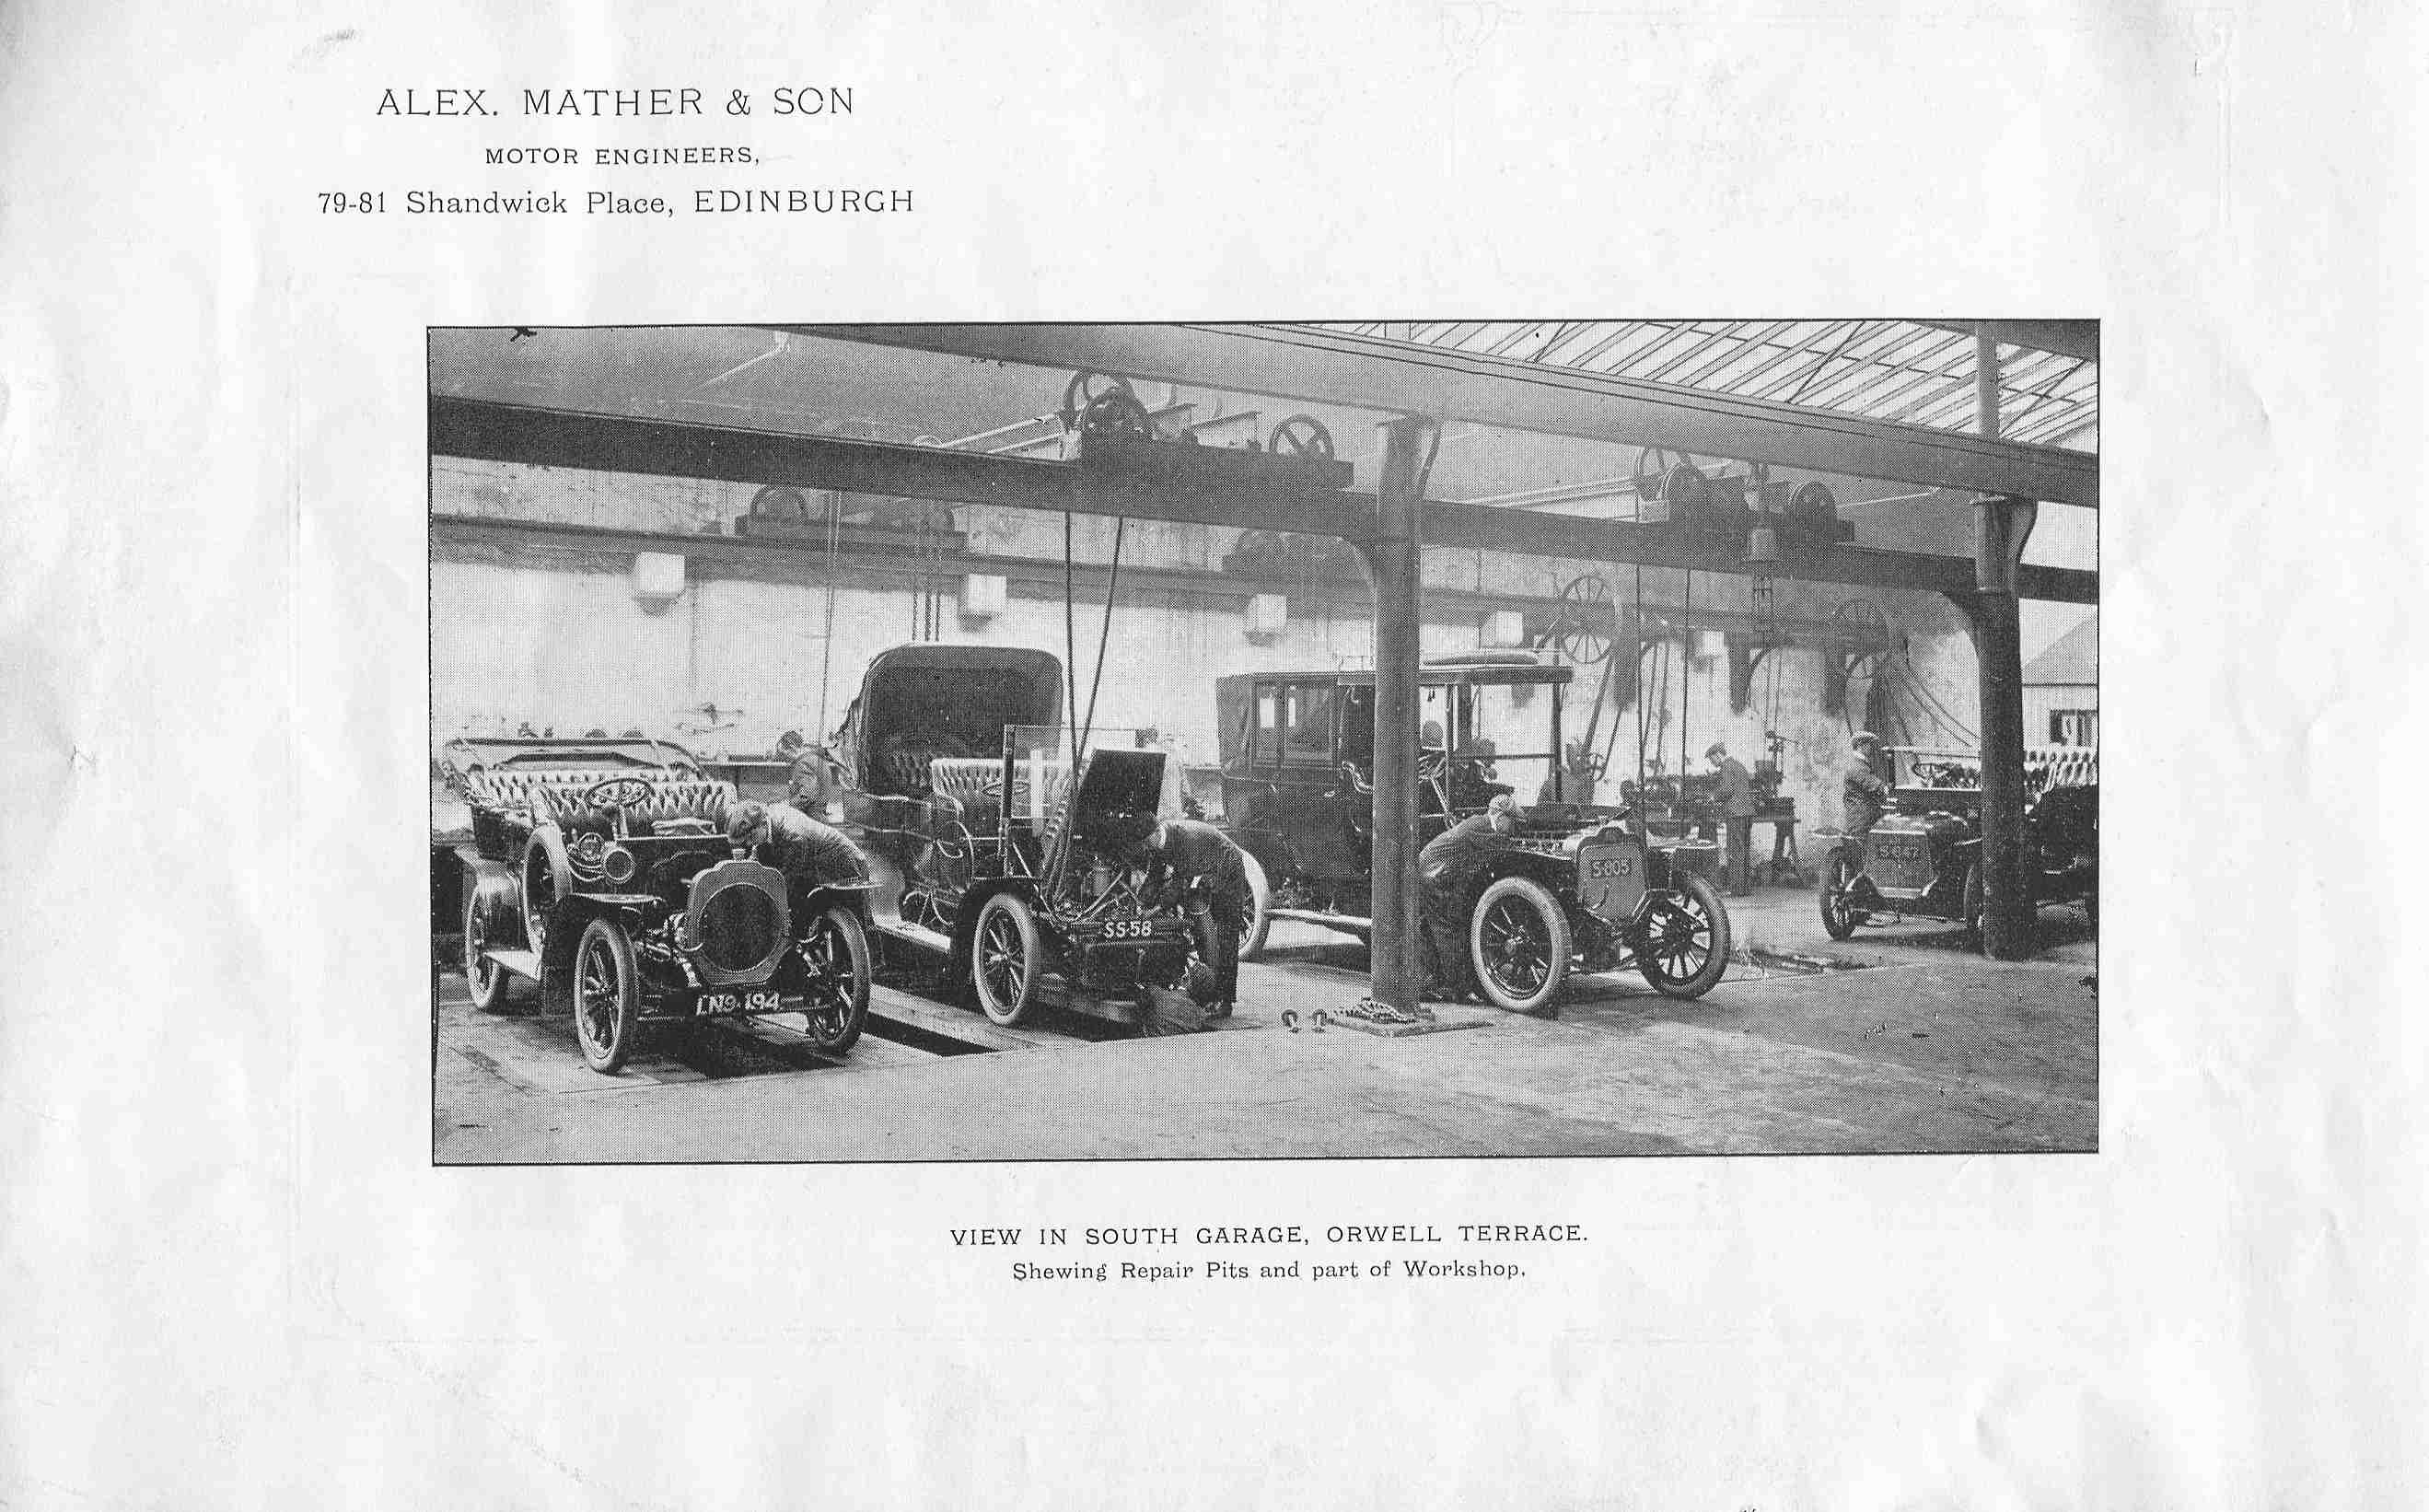 Alex Mather & Son, View In South Garage, Orwell Terrace 1920s